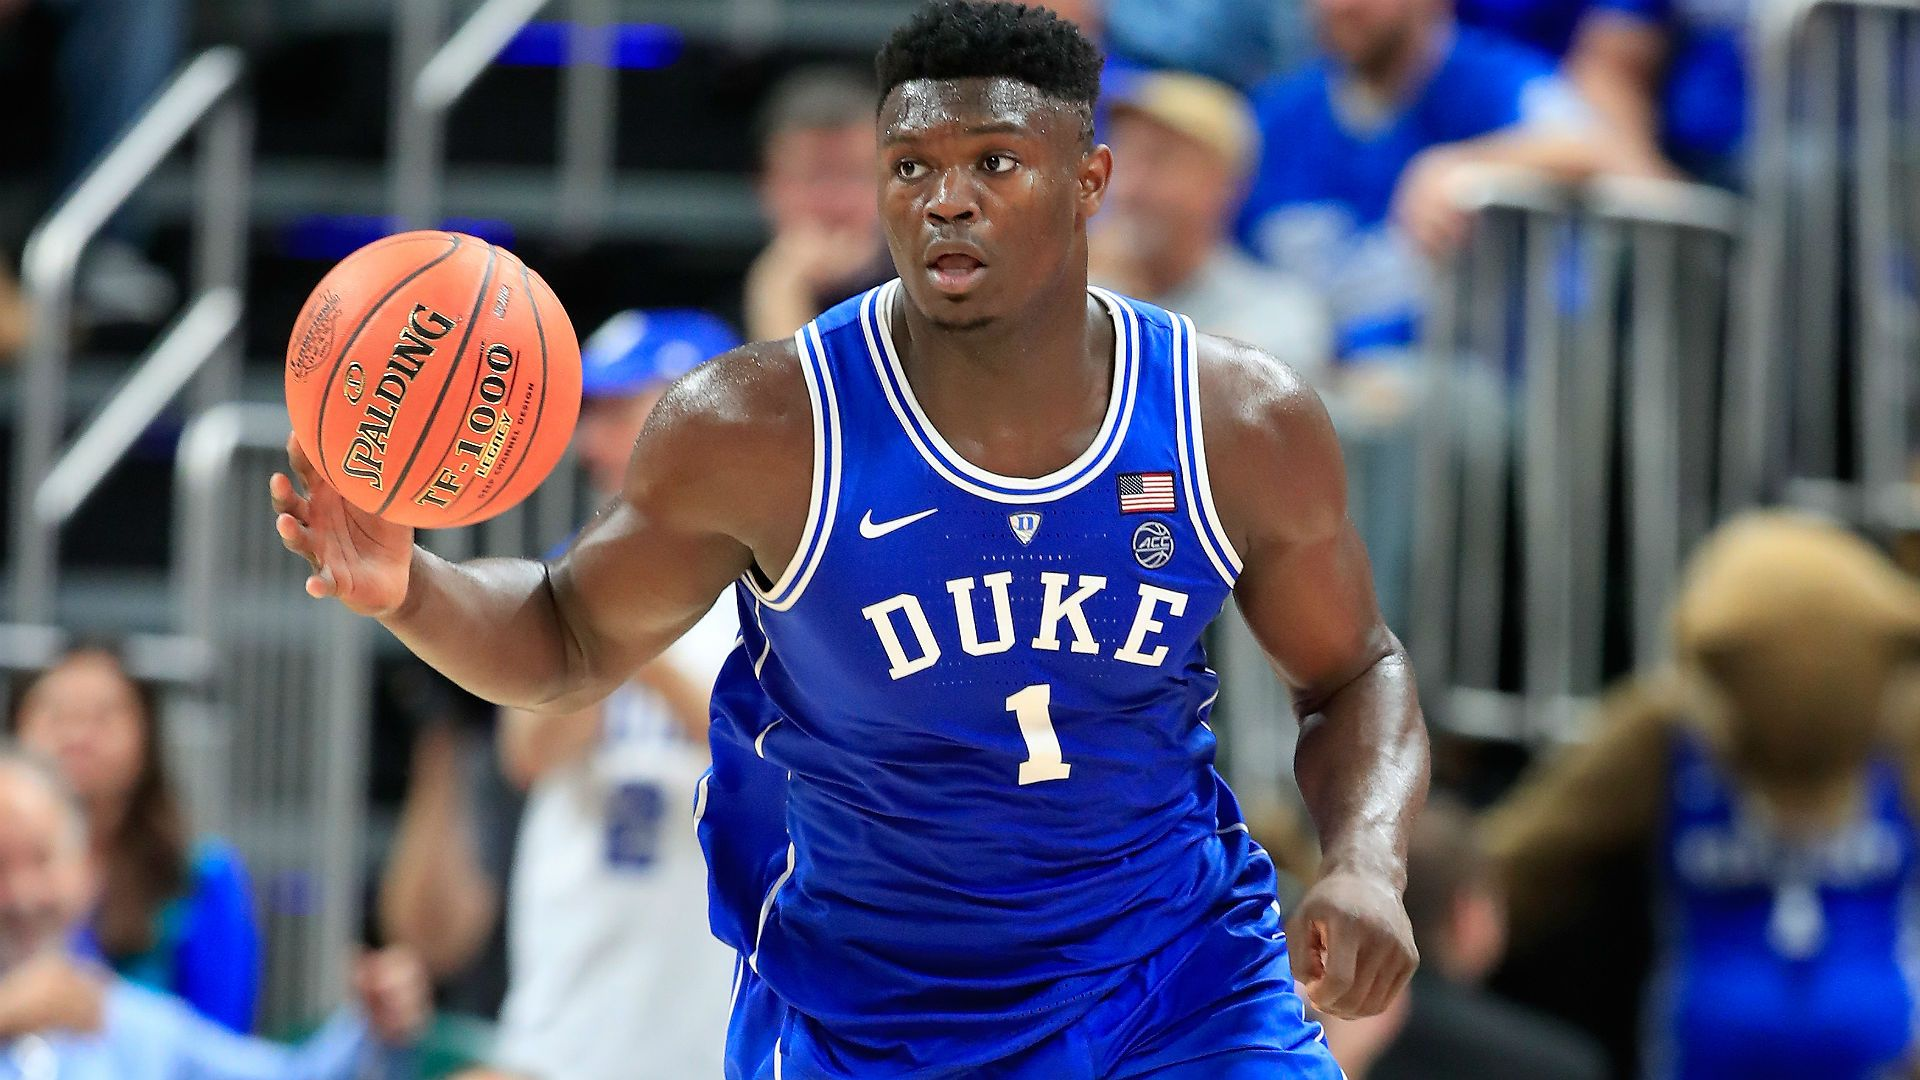 Duke star zion williamson on ending college career after